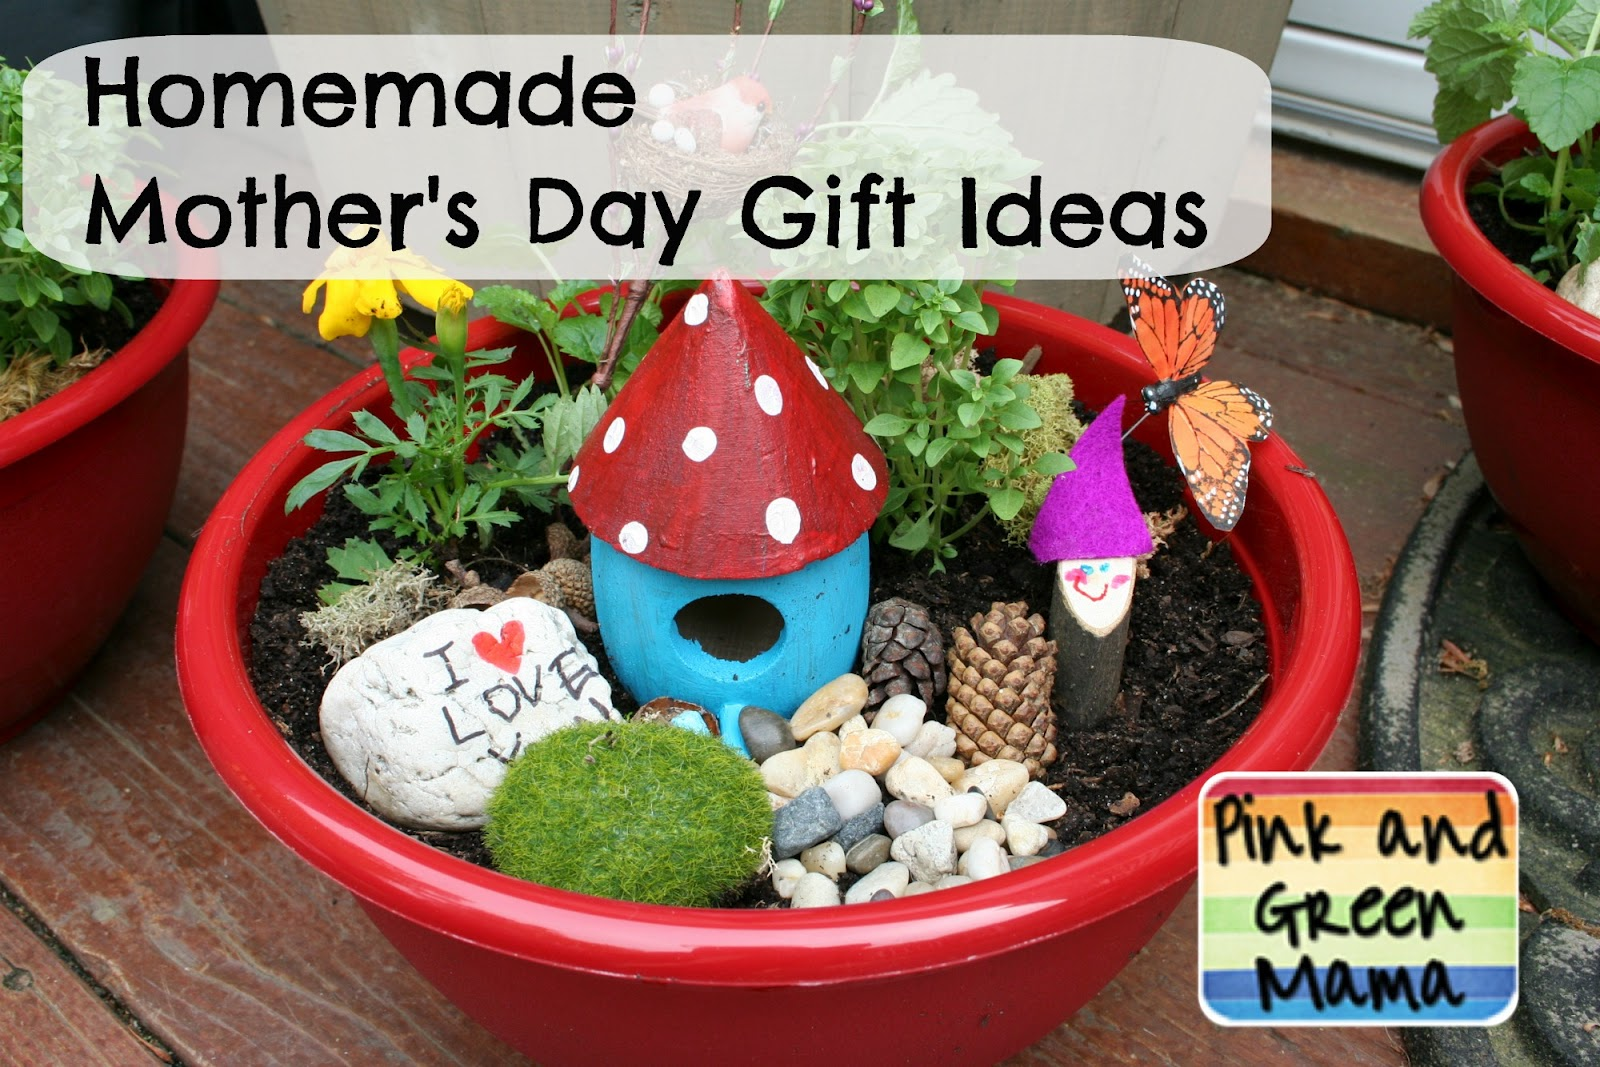 Diy Mothers Day Gifts For Grandma Mothers Day Gifts For Grandma Mothers Day Gifts Homemade